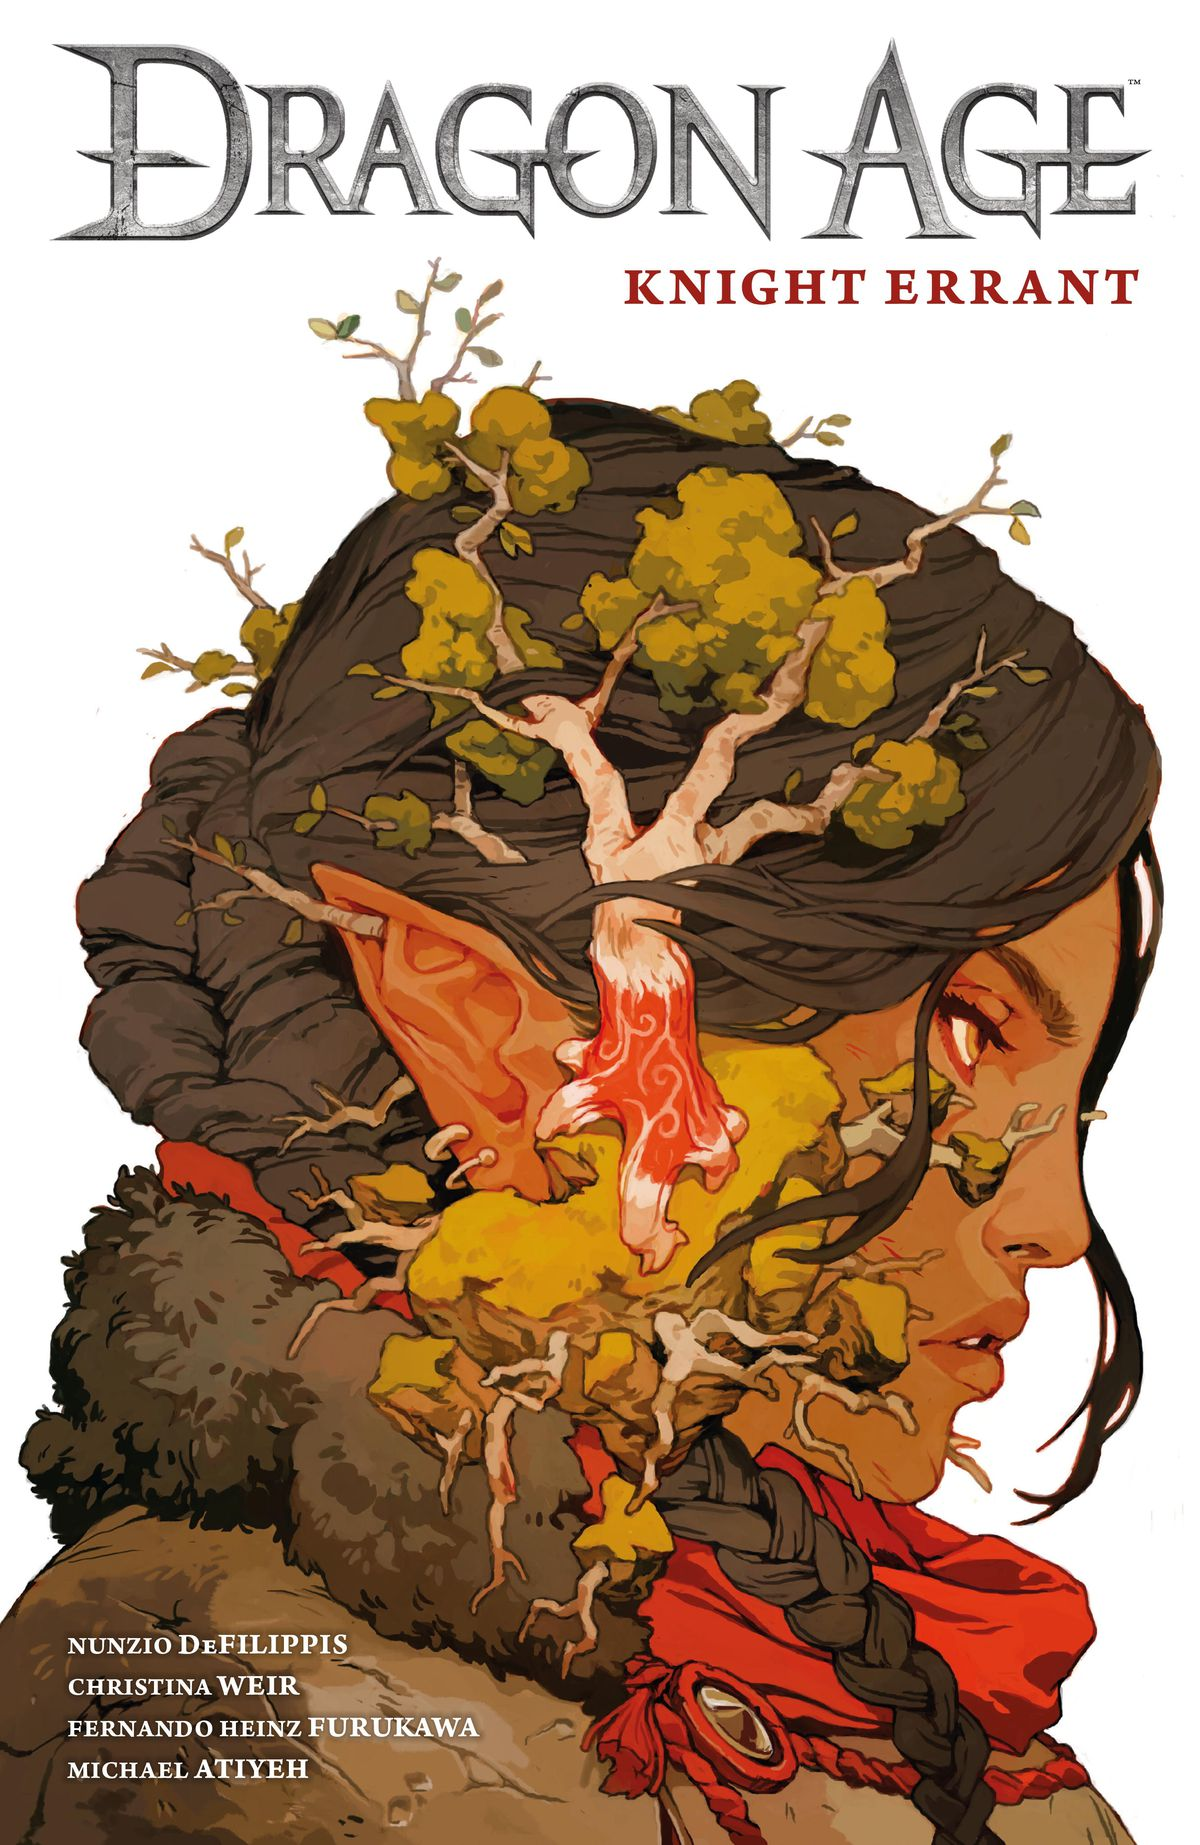 The cover of the trade collection of Dragon Age: Knight Errant